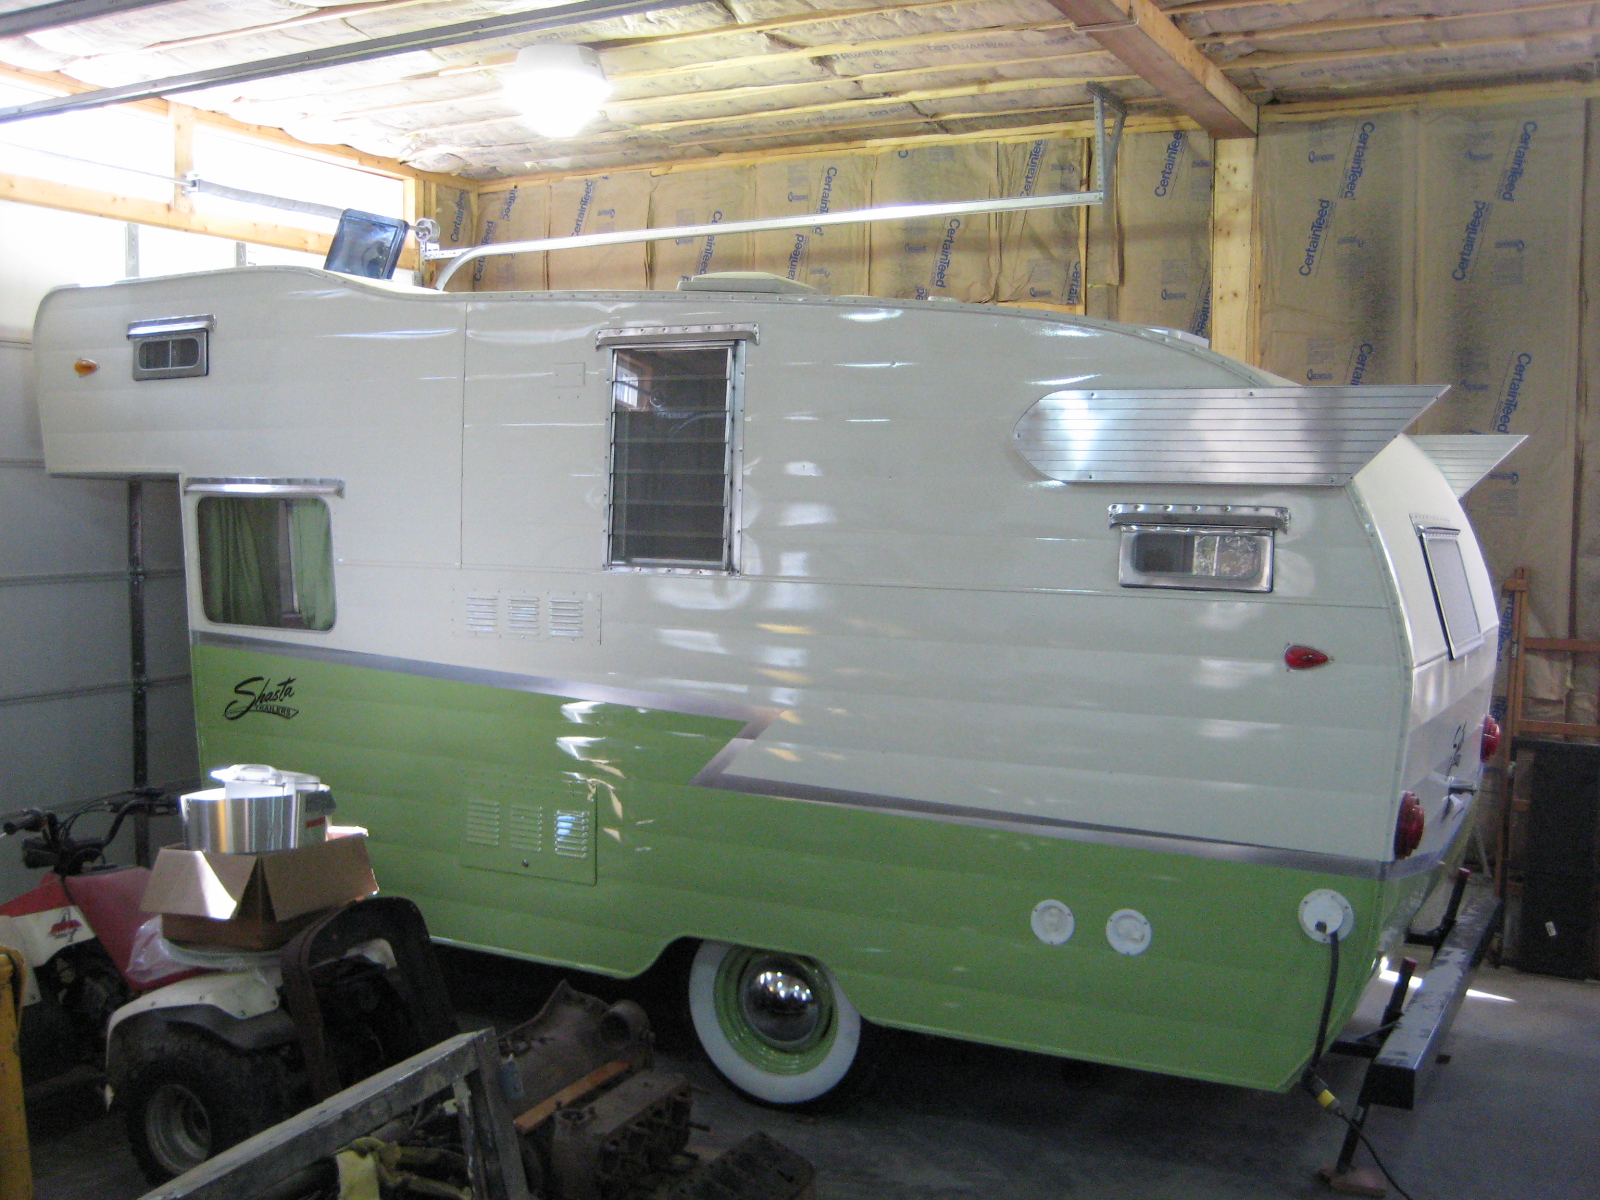 Shasta Trailer Wiring Harness Airflte Library Camper From Nasty To Shasty Wings